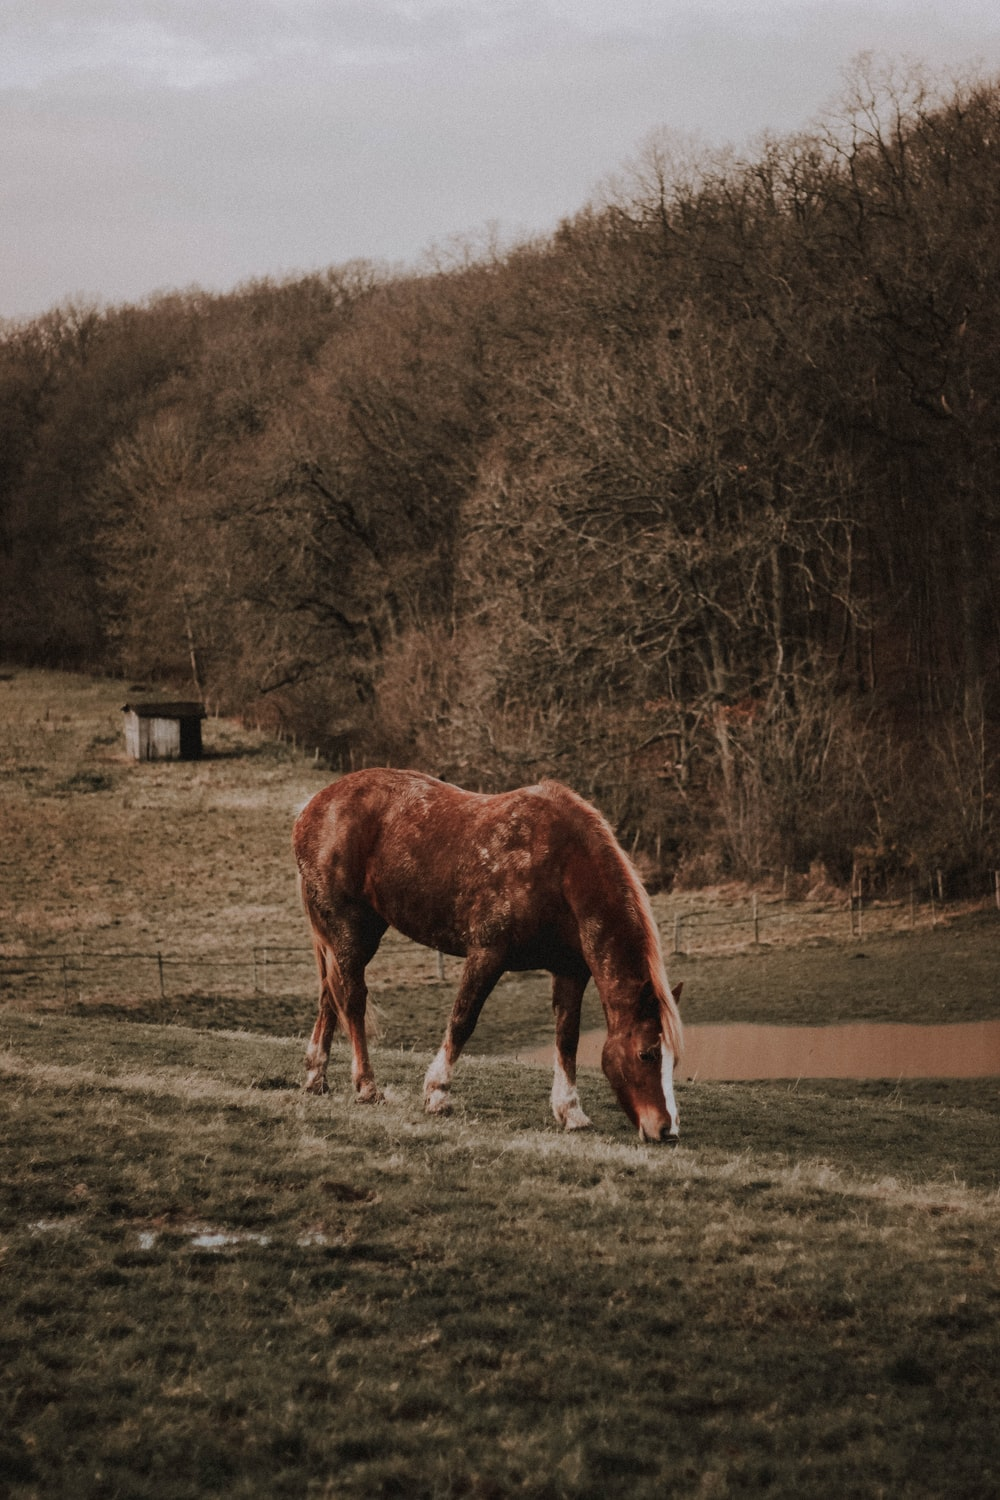 horse eating grass near trees during day